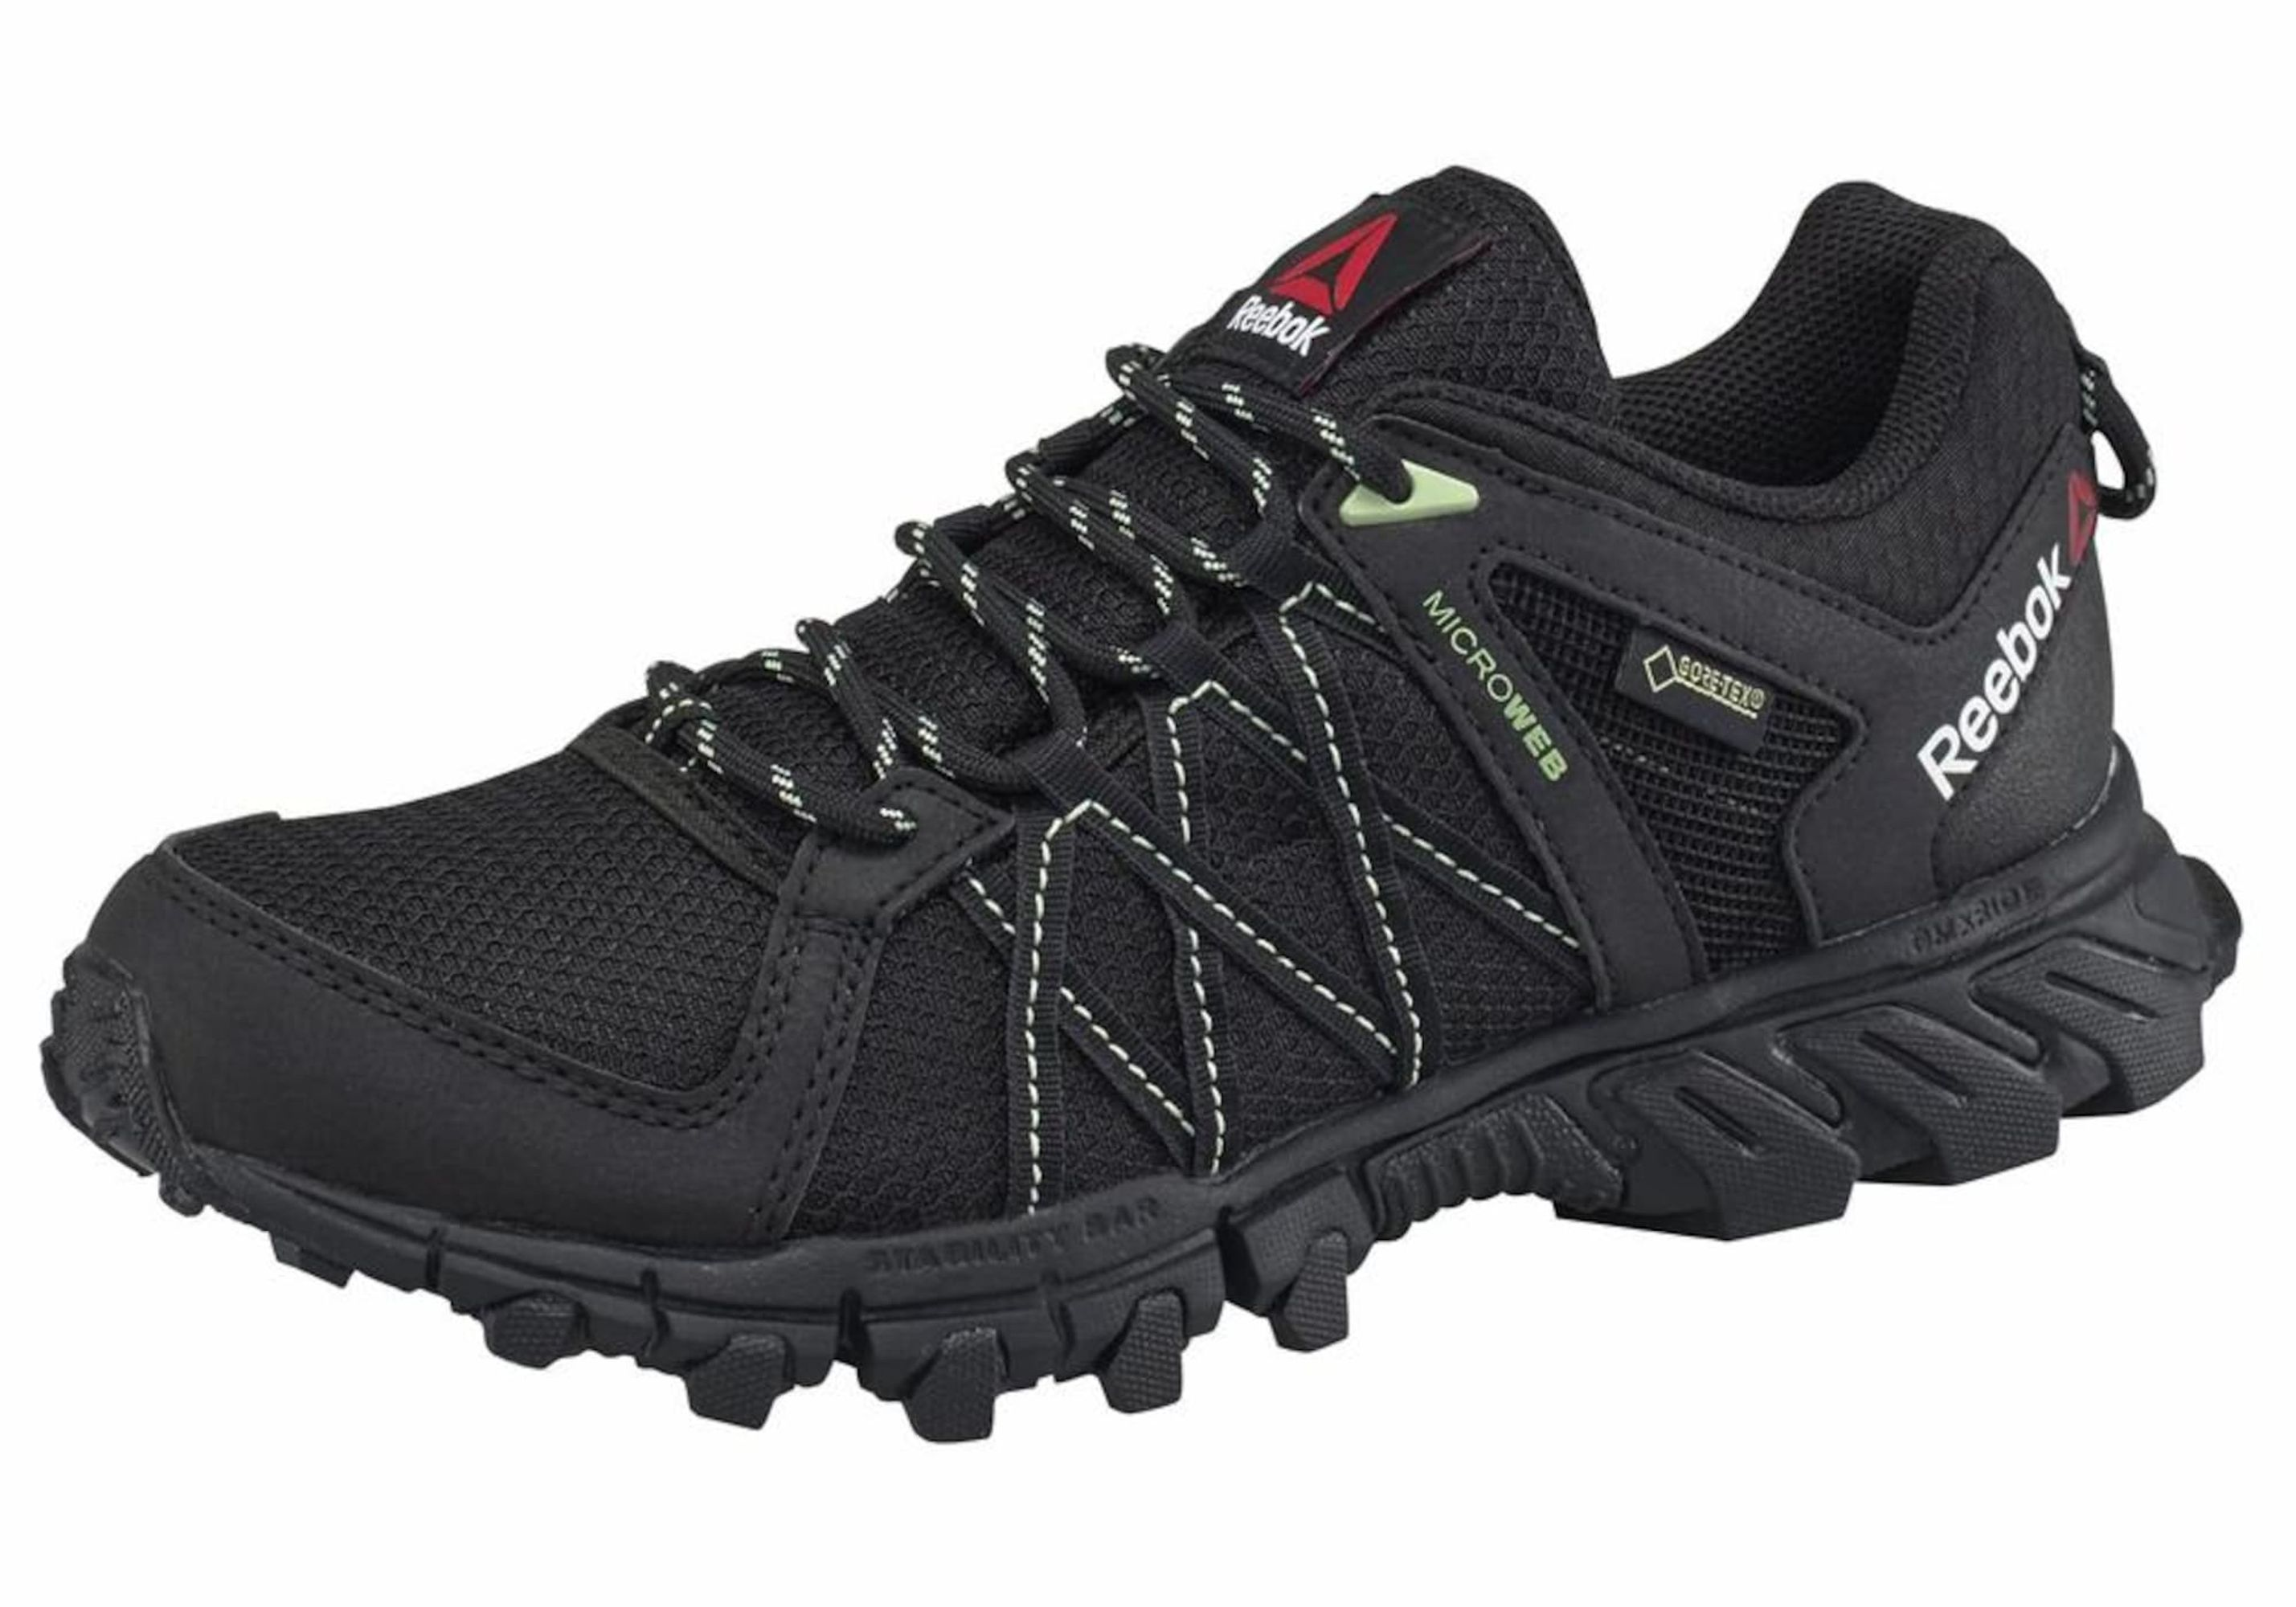 Walkingschuh ´Trailgrip RS 5.0 Goretex´